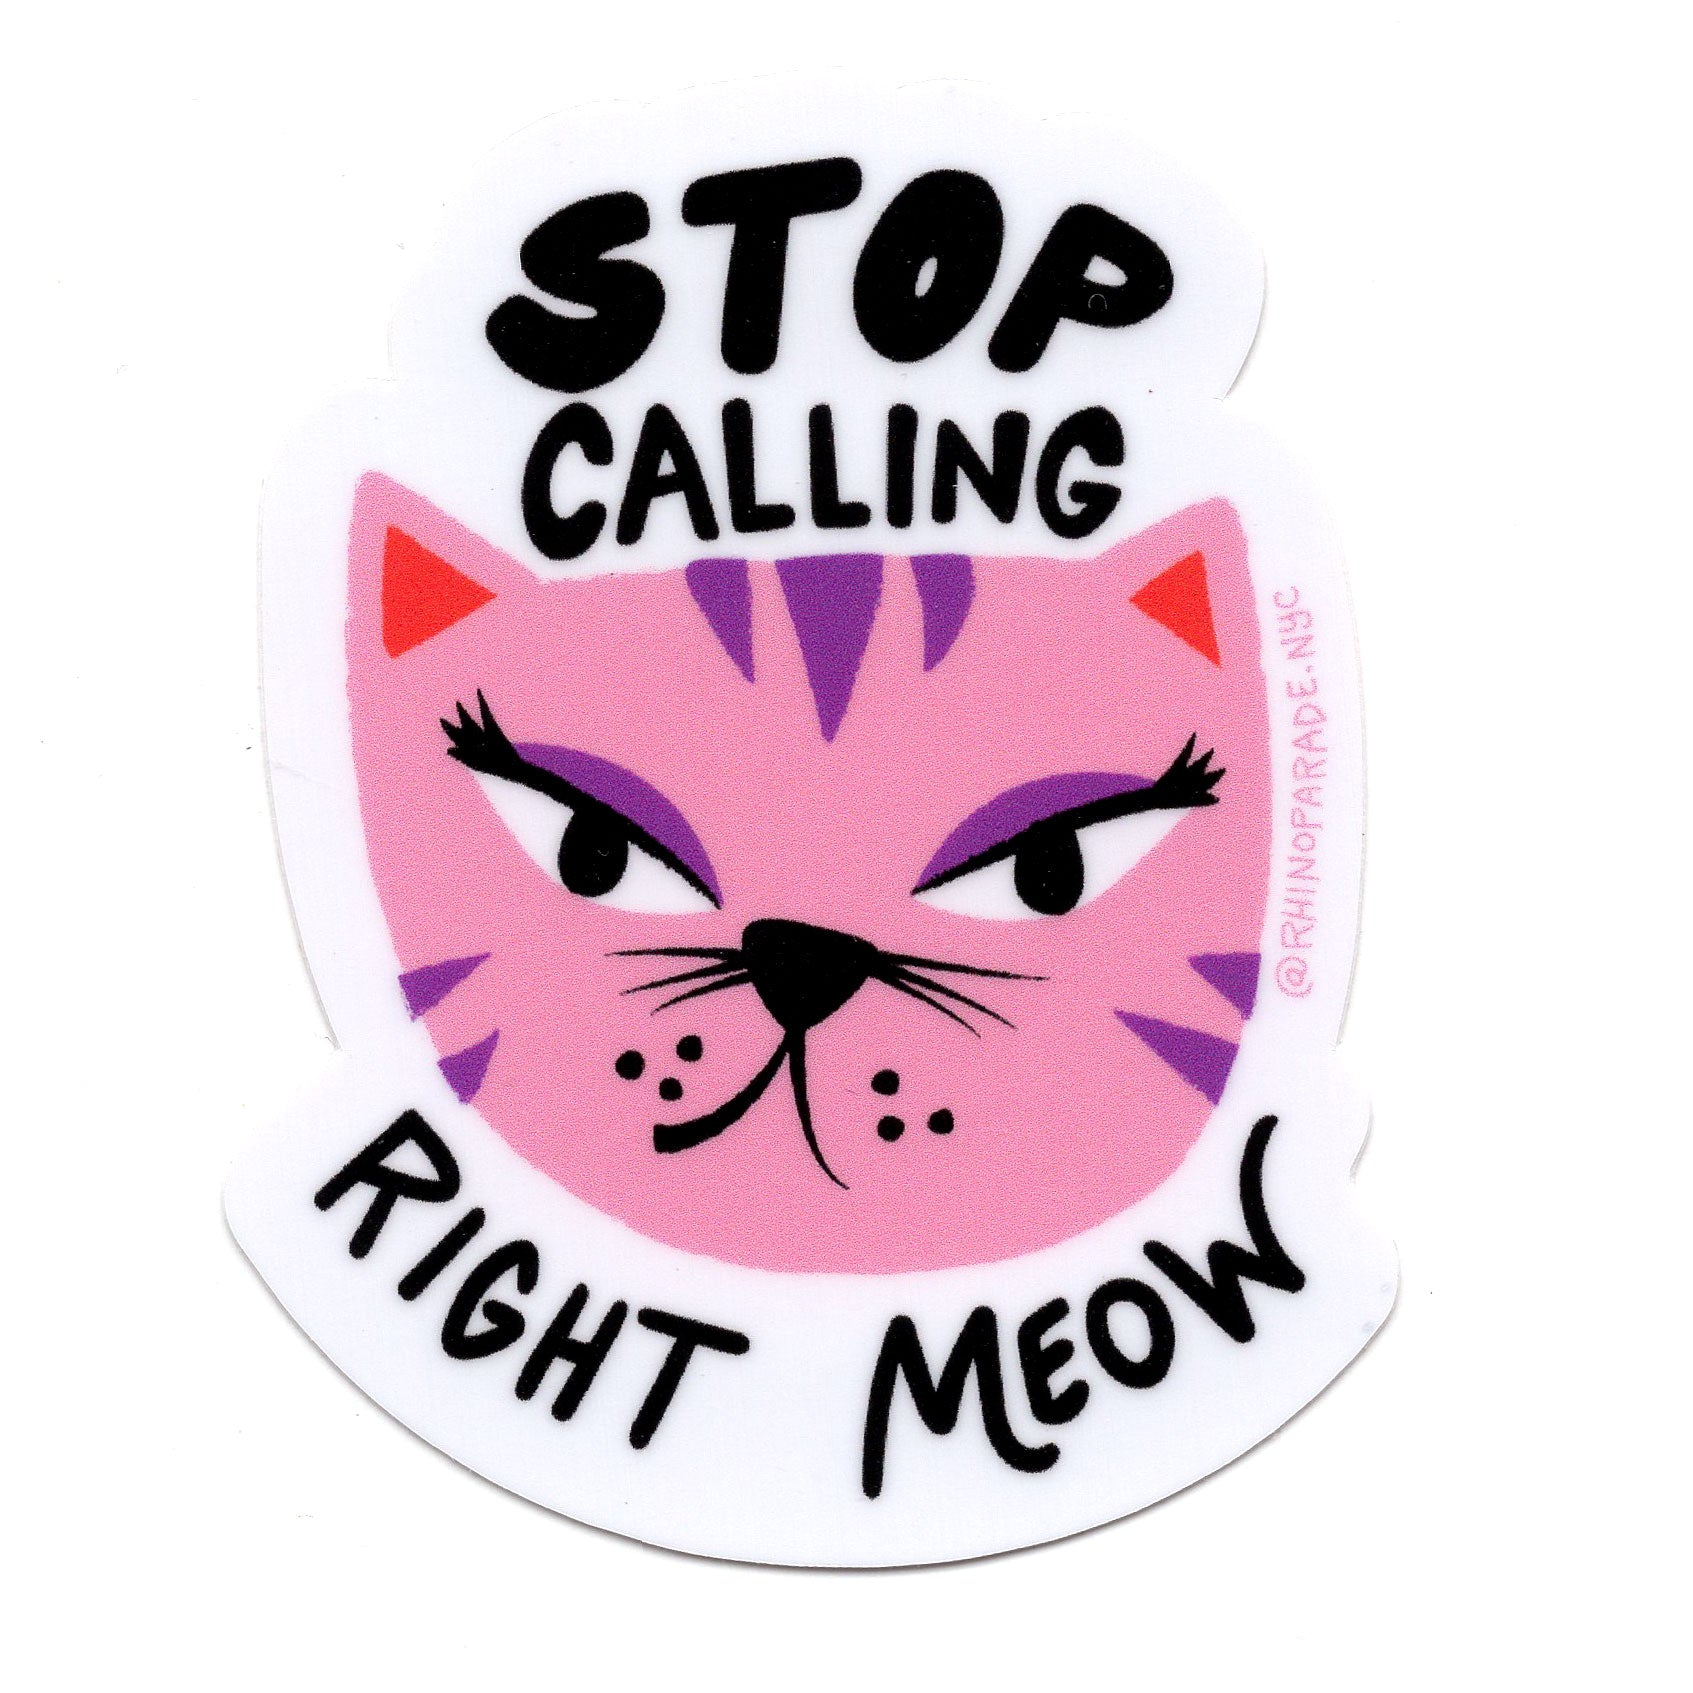 Stop Catcalling Sticker